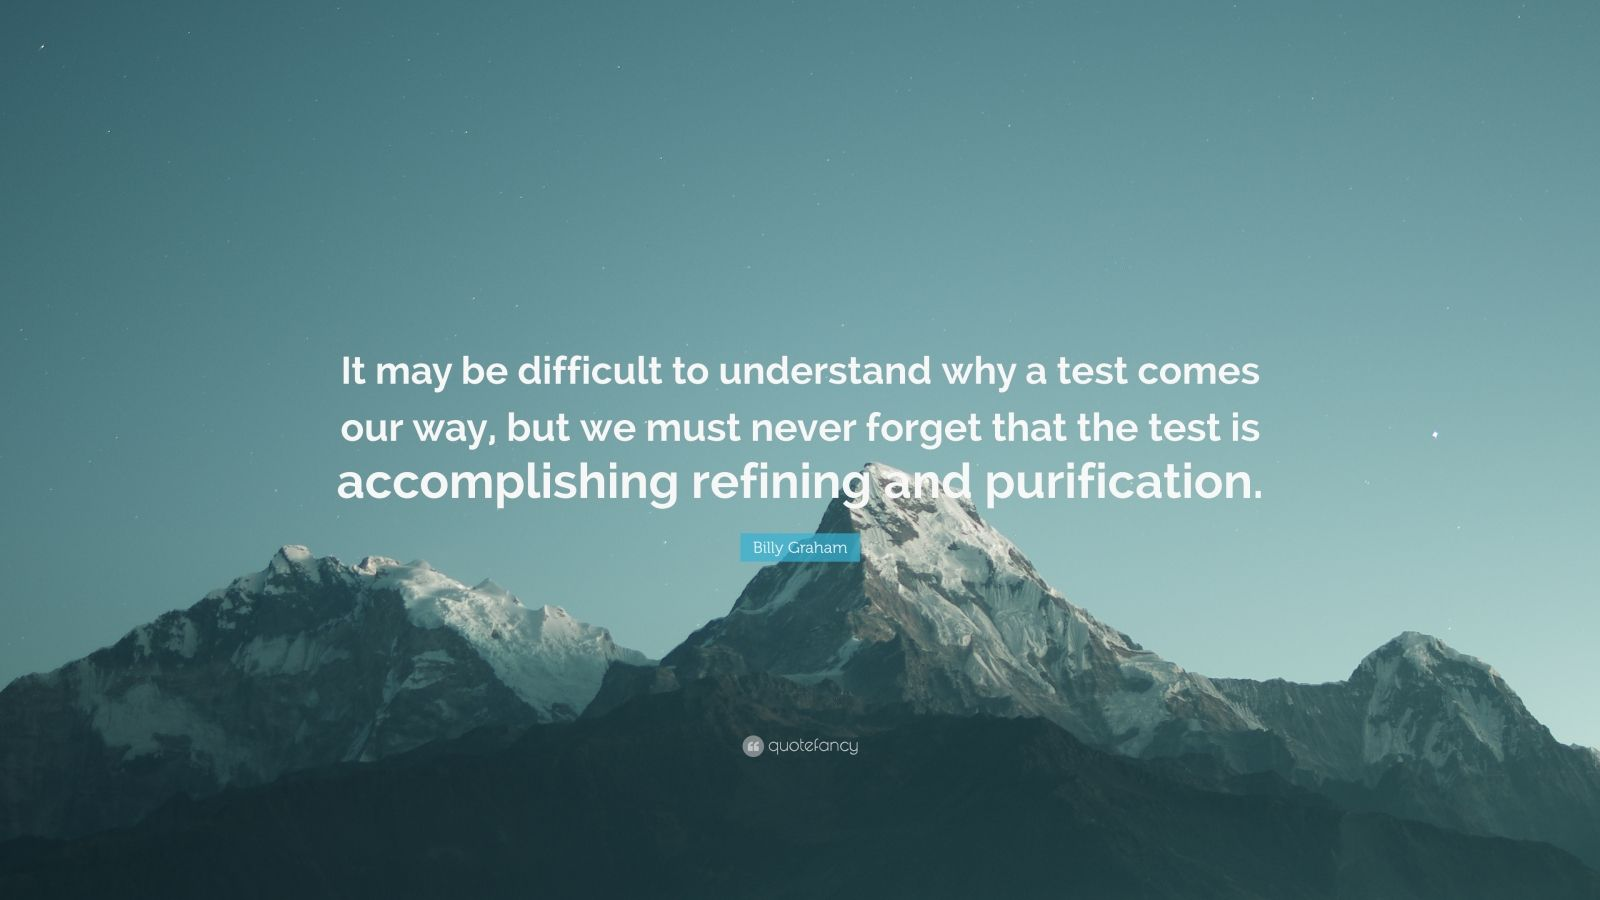 """Billy Graham Quote: """"It may be difficult to understand why a test comes our way, but we must never forget that the test is accomplishing refining and purification."""""""